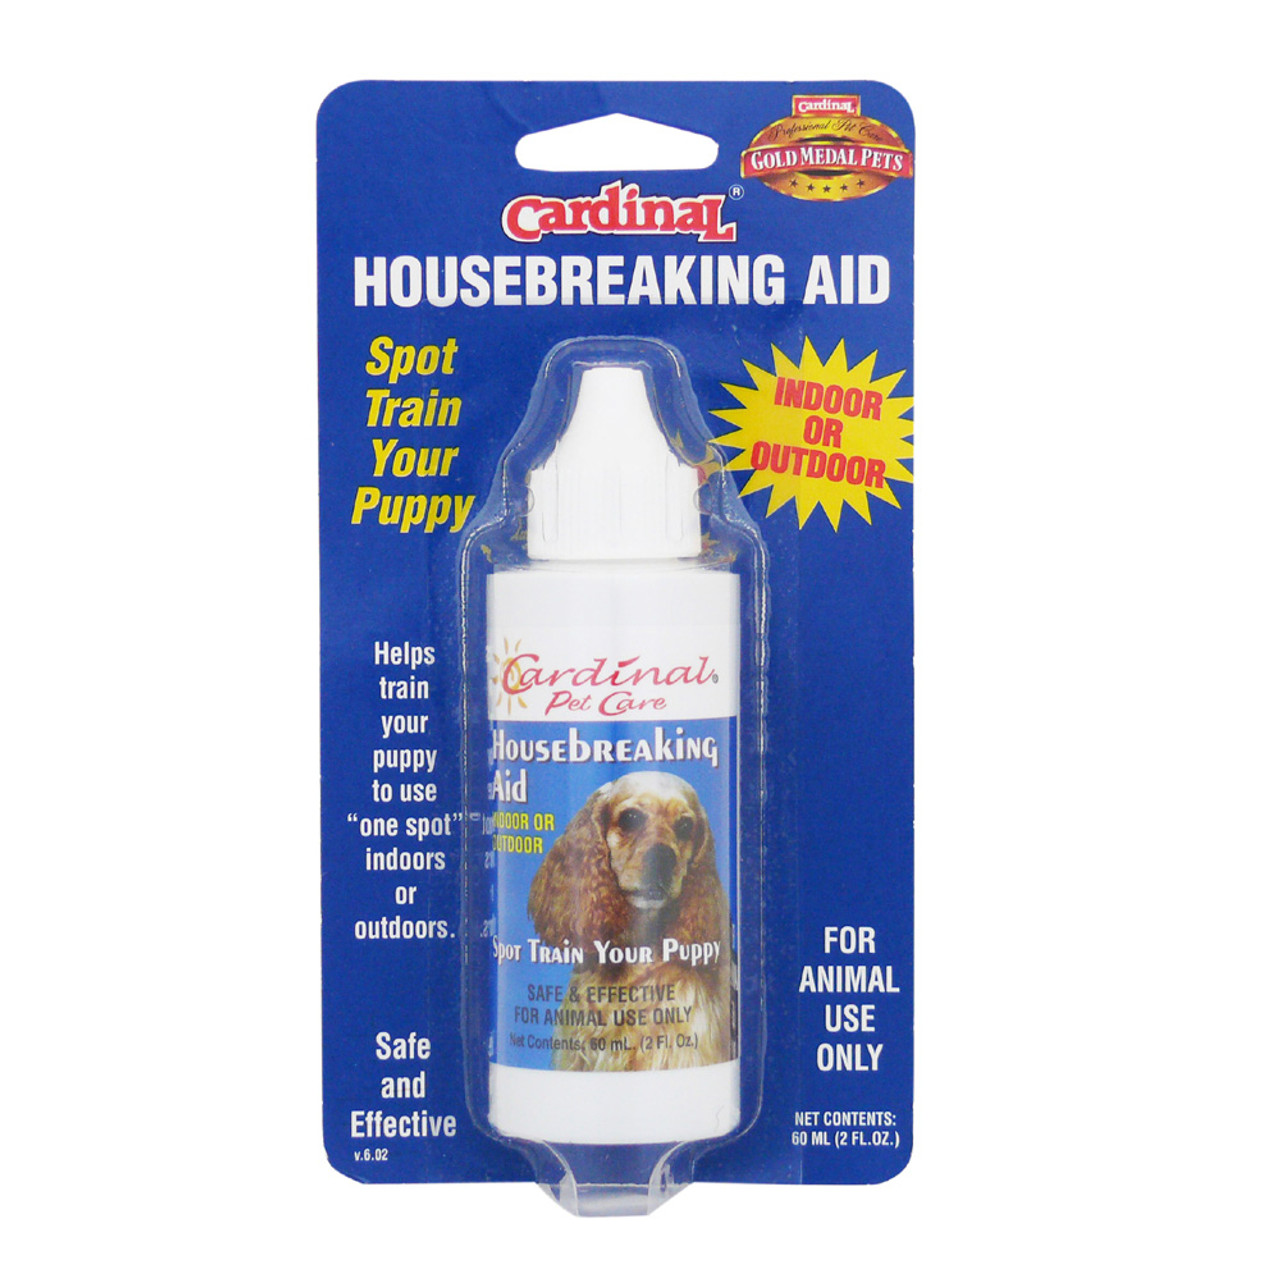 Cardinal Housebreaking Aid for Puppies